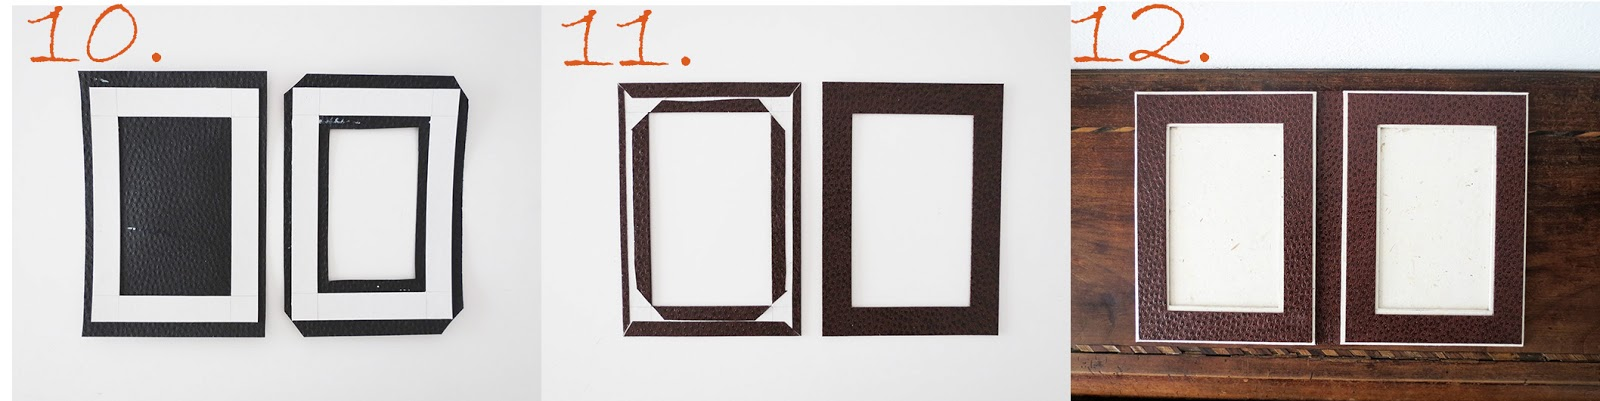 How To Make A Frame From Cardboard - Page 5 - Frame Design & Reviews ✓